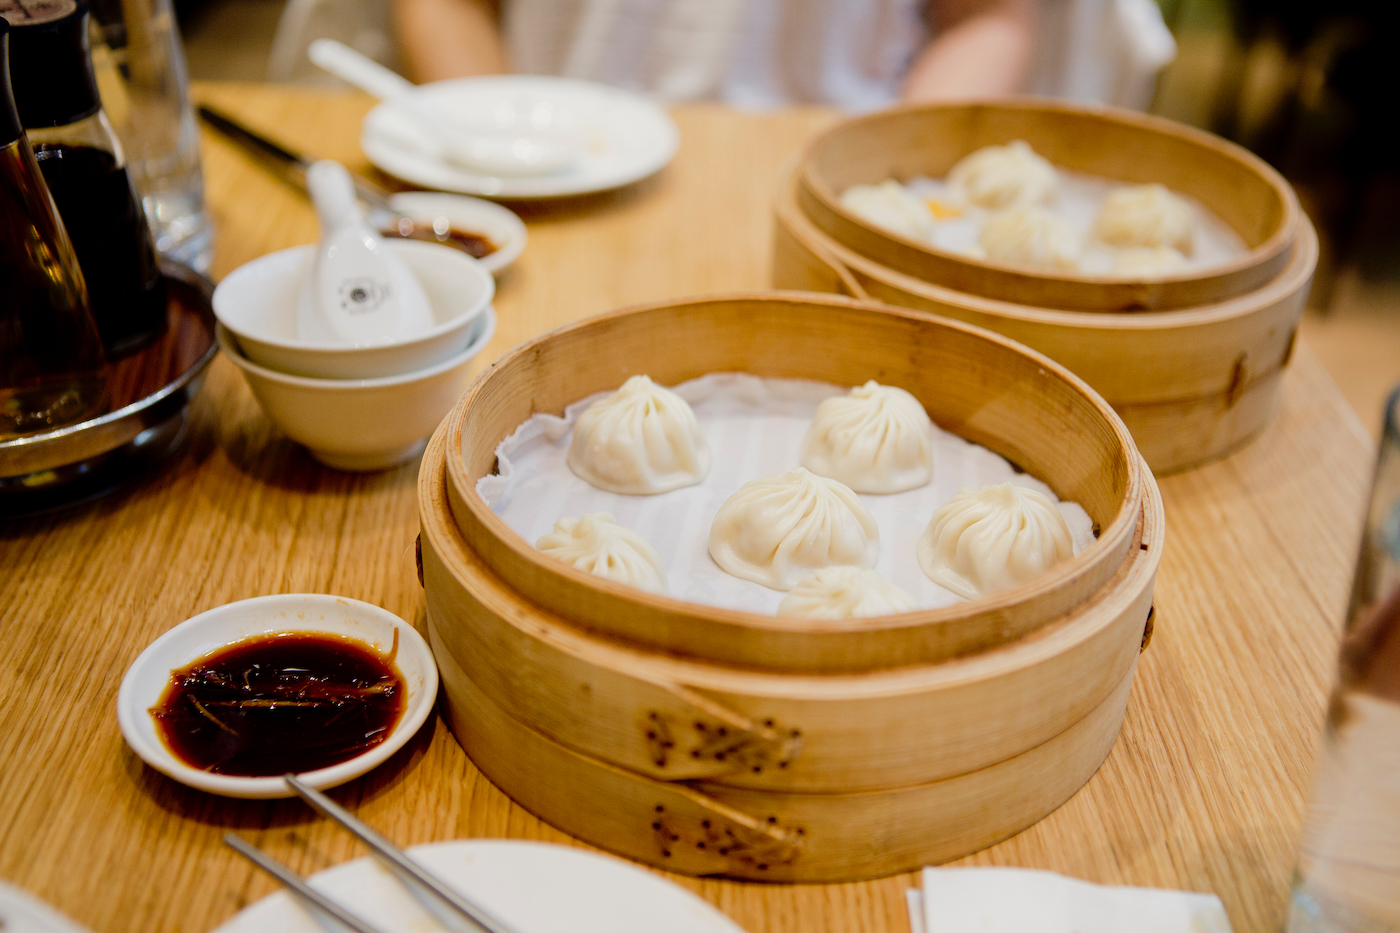 Xiao Long Bao & Spicy Dumplings at Din Tai Fung Dubai